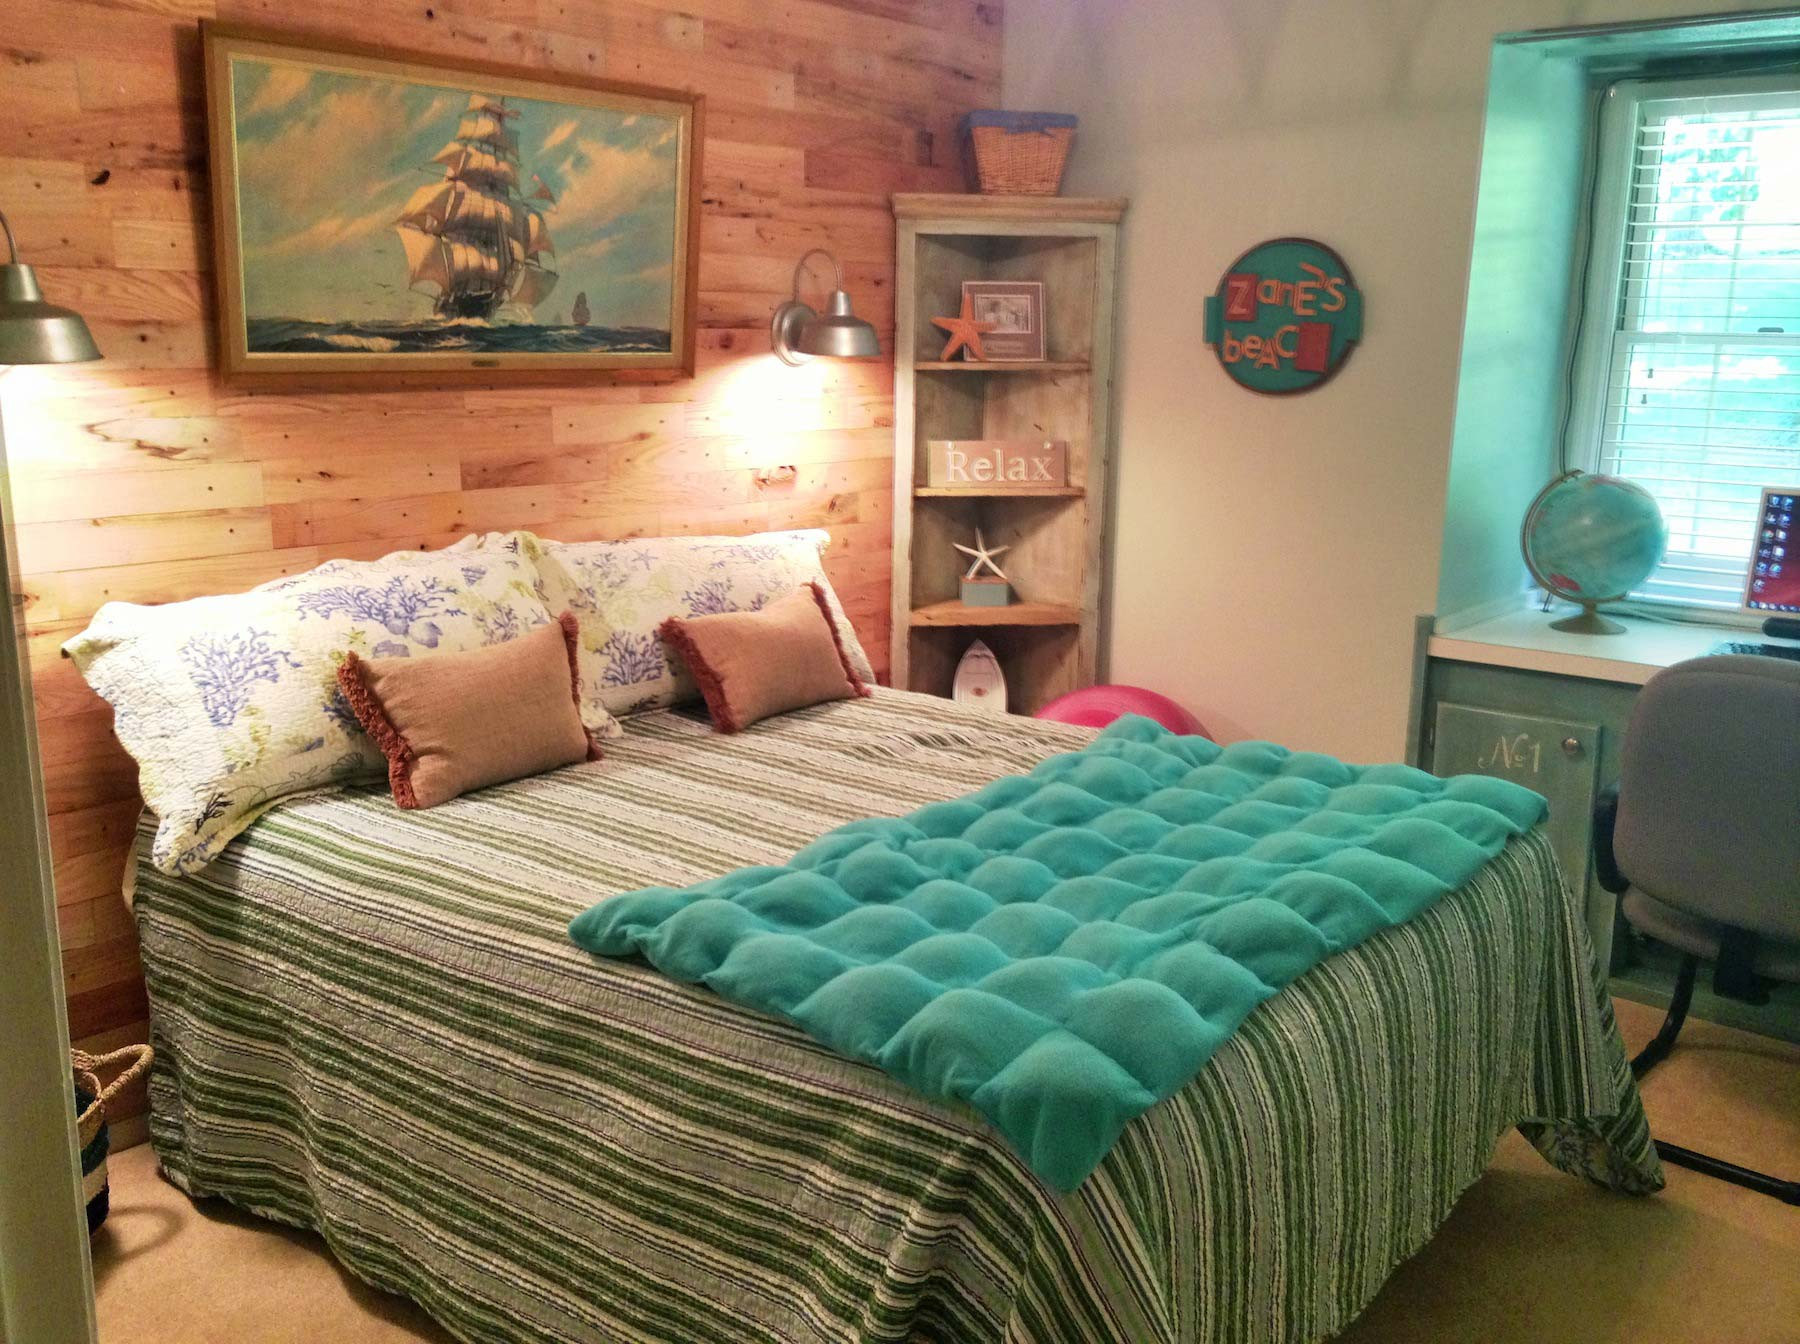 Best ideas about Beach Themed Bedroom . Save or Pin Beach Room Makeover Now.